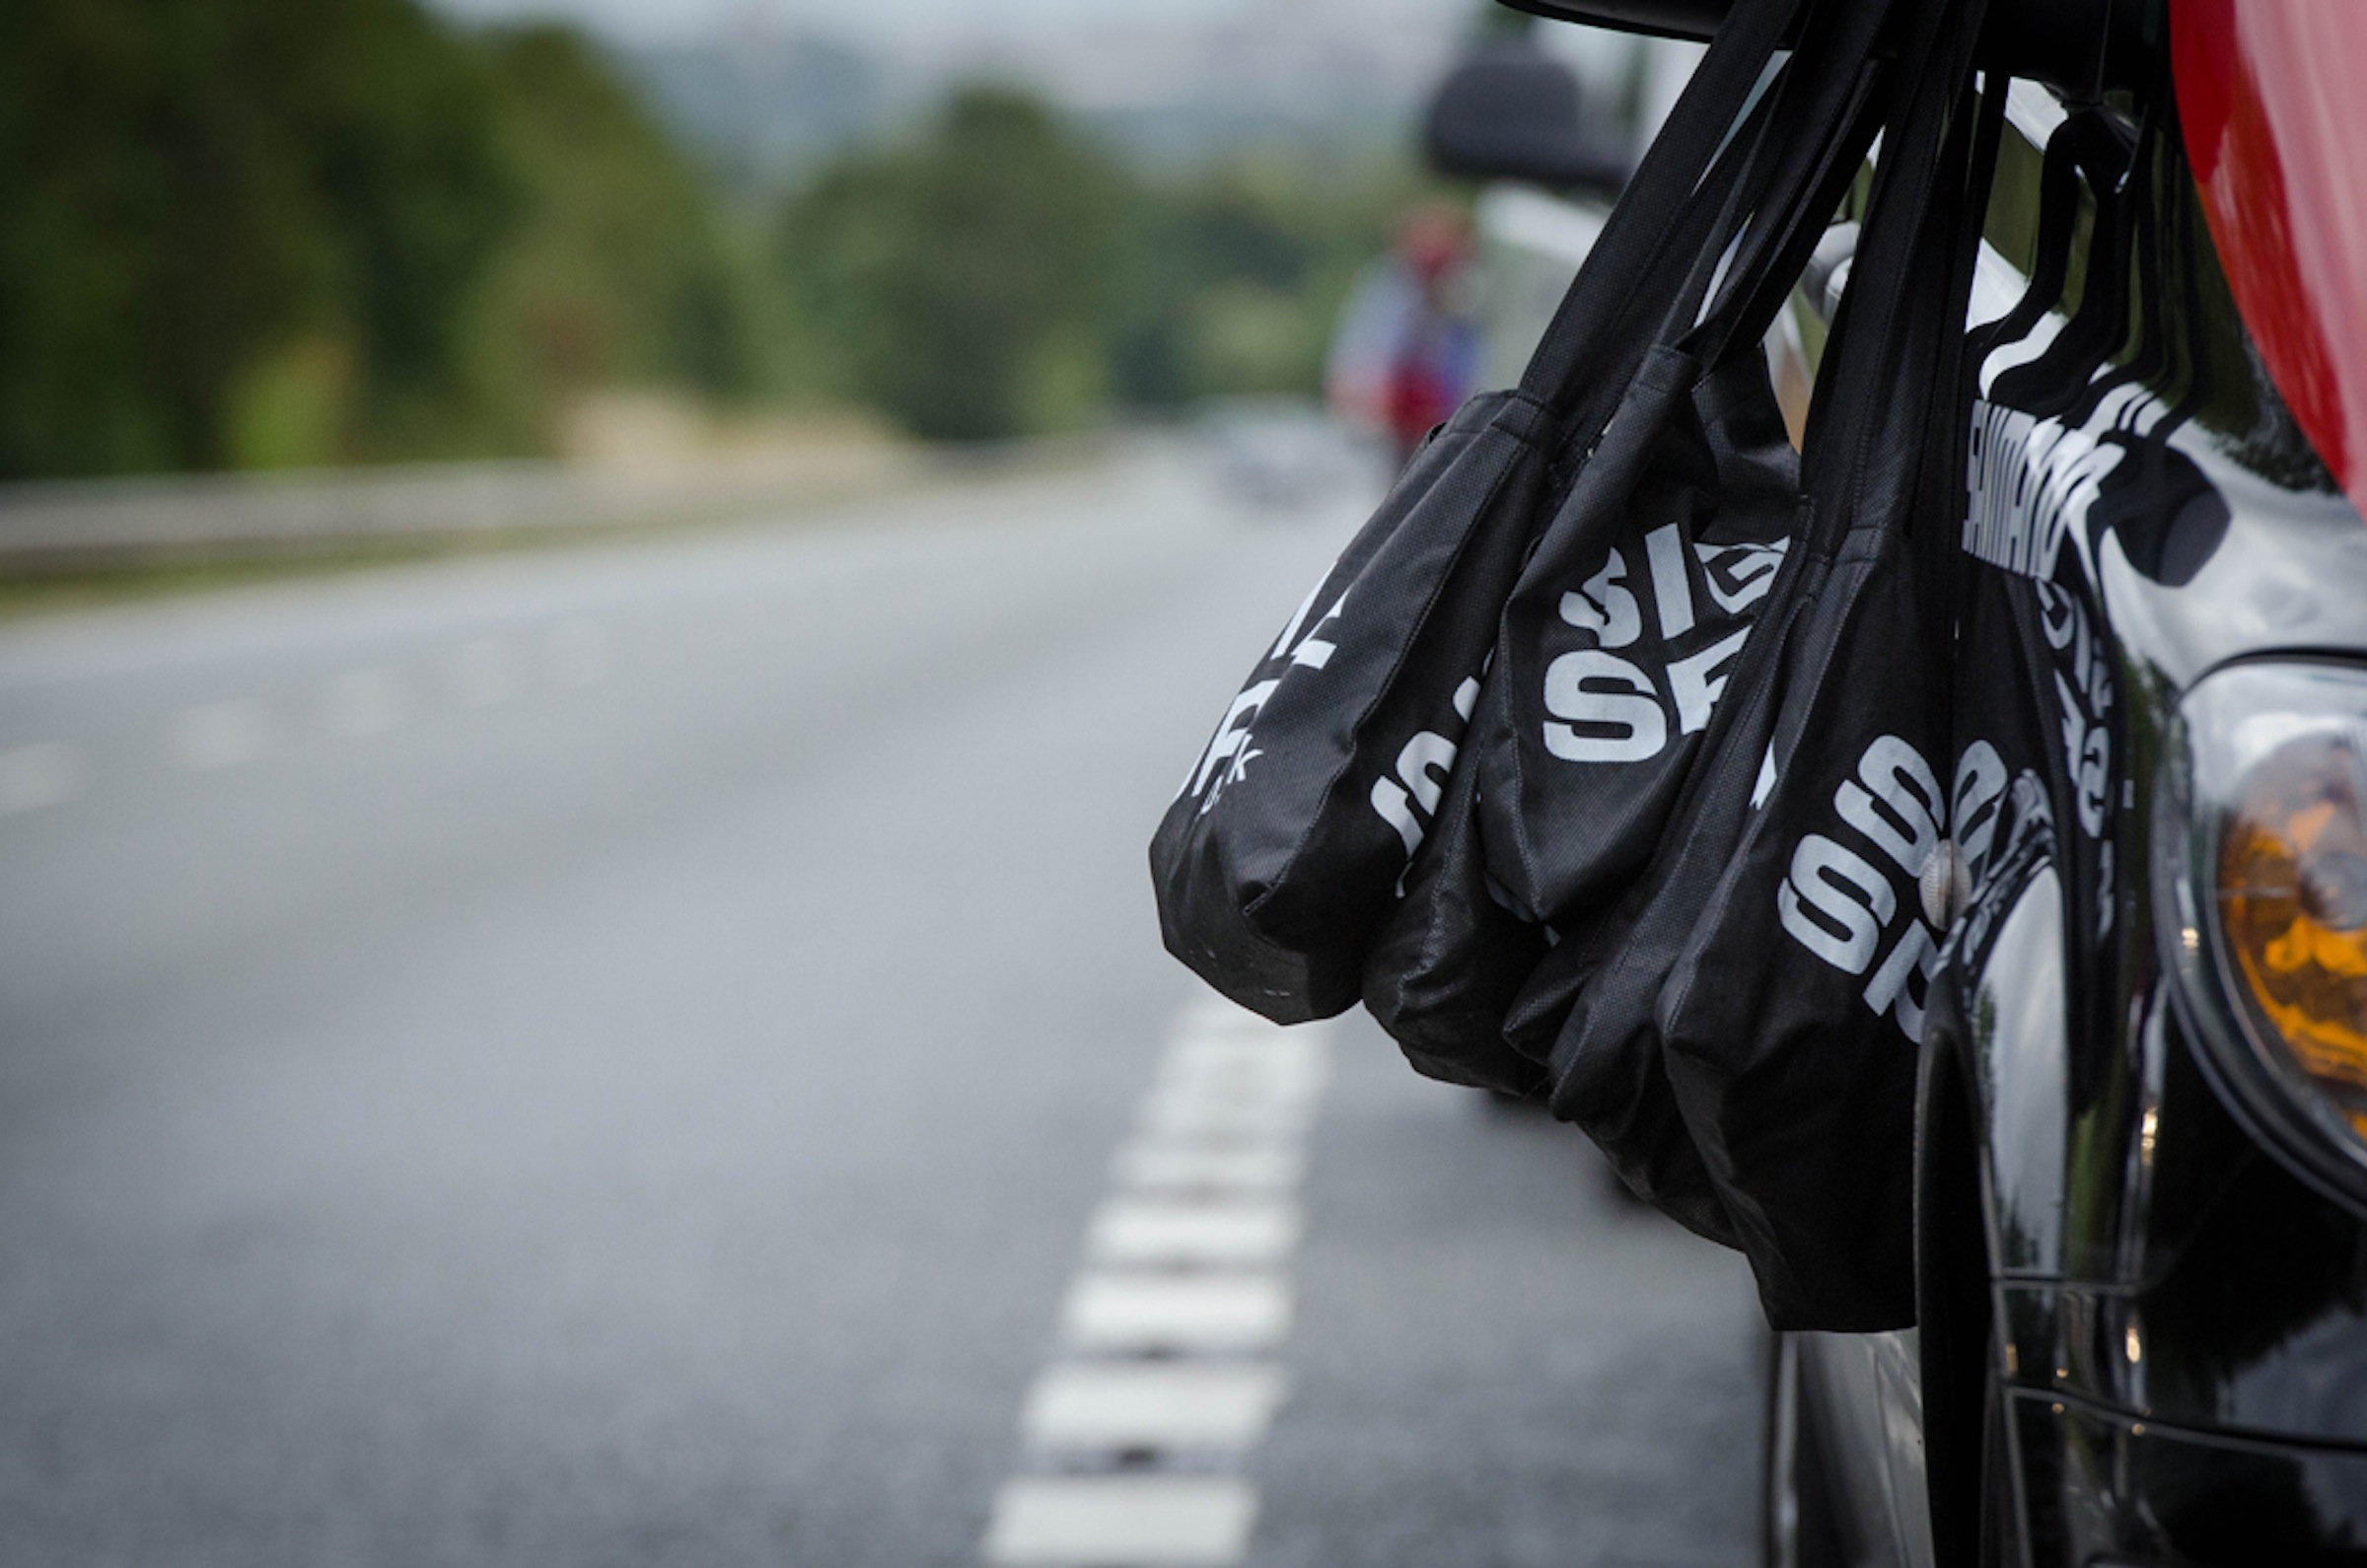 Sigma Sport musettes, Tour of Britain 2013, stage four, pic: ©Paul Hayes-Watkins, used with permission